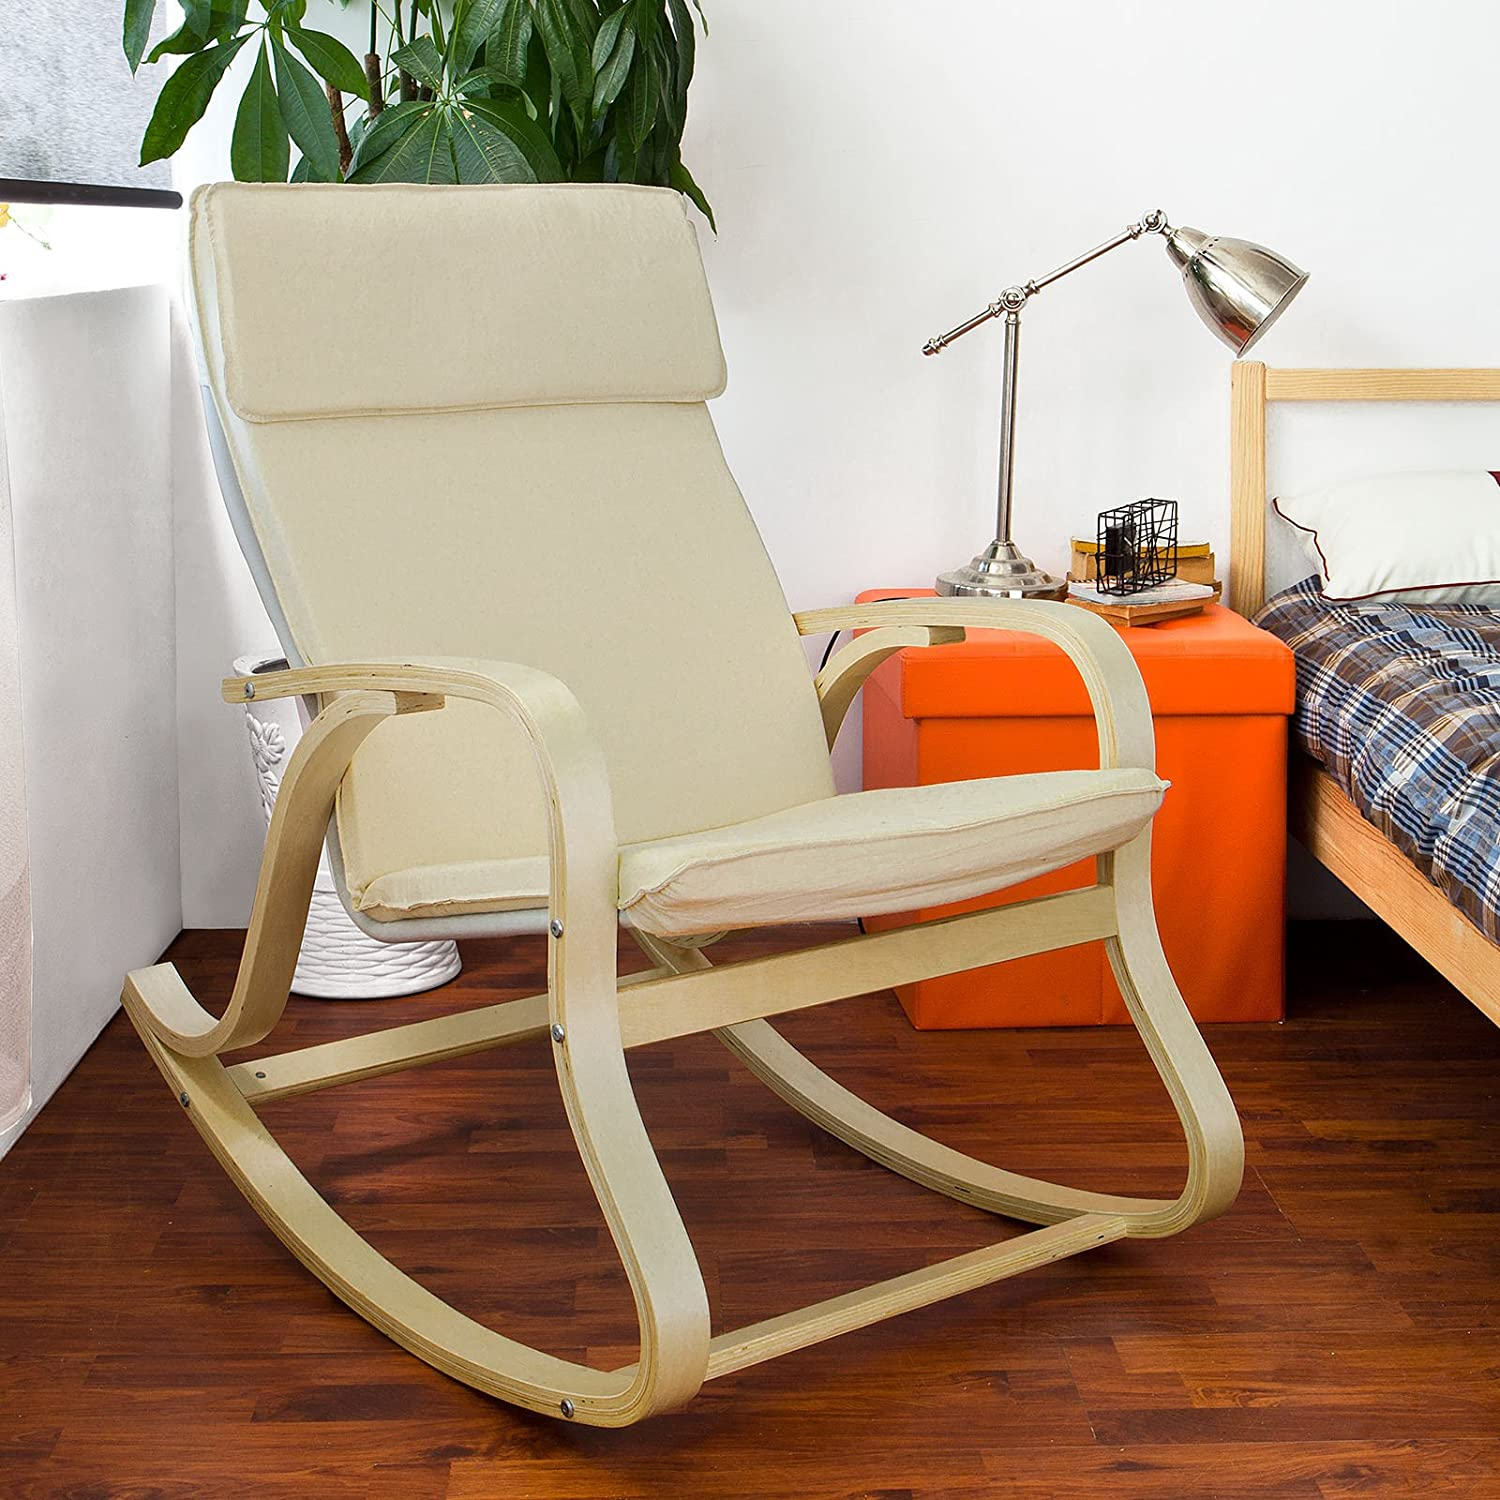 Haotian Comfortable Relax Rocking Chair, Lounge Chair Relax Chair with Cotton Fabric Cushion (FST15-W)